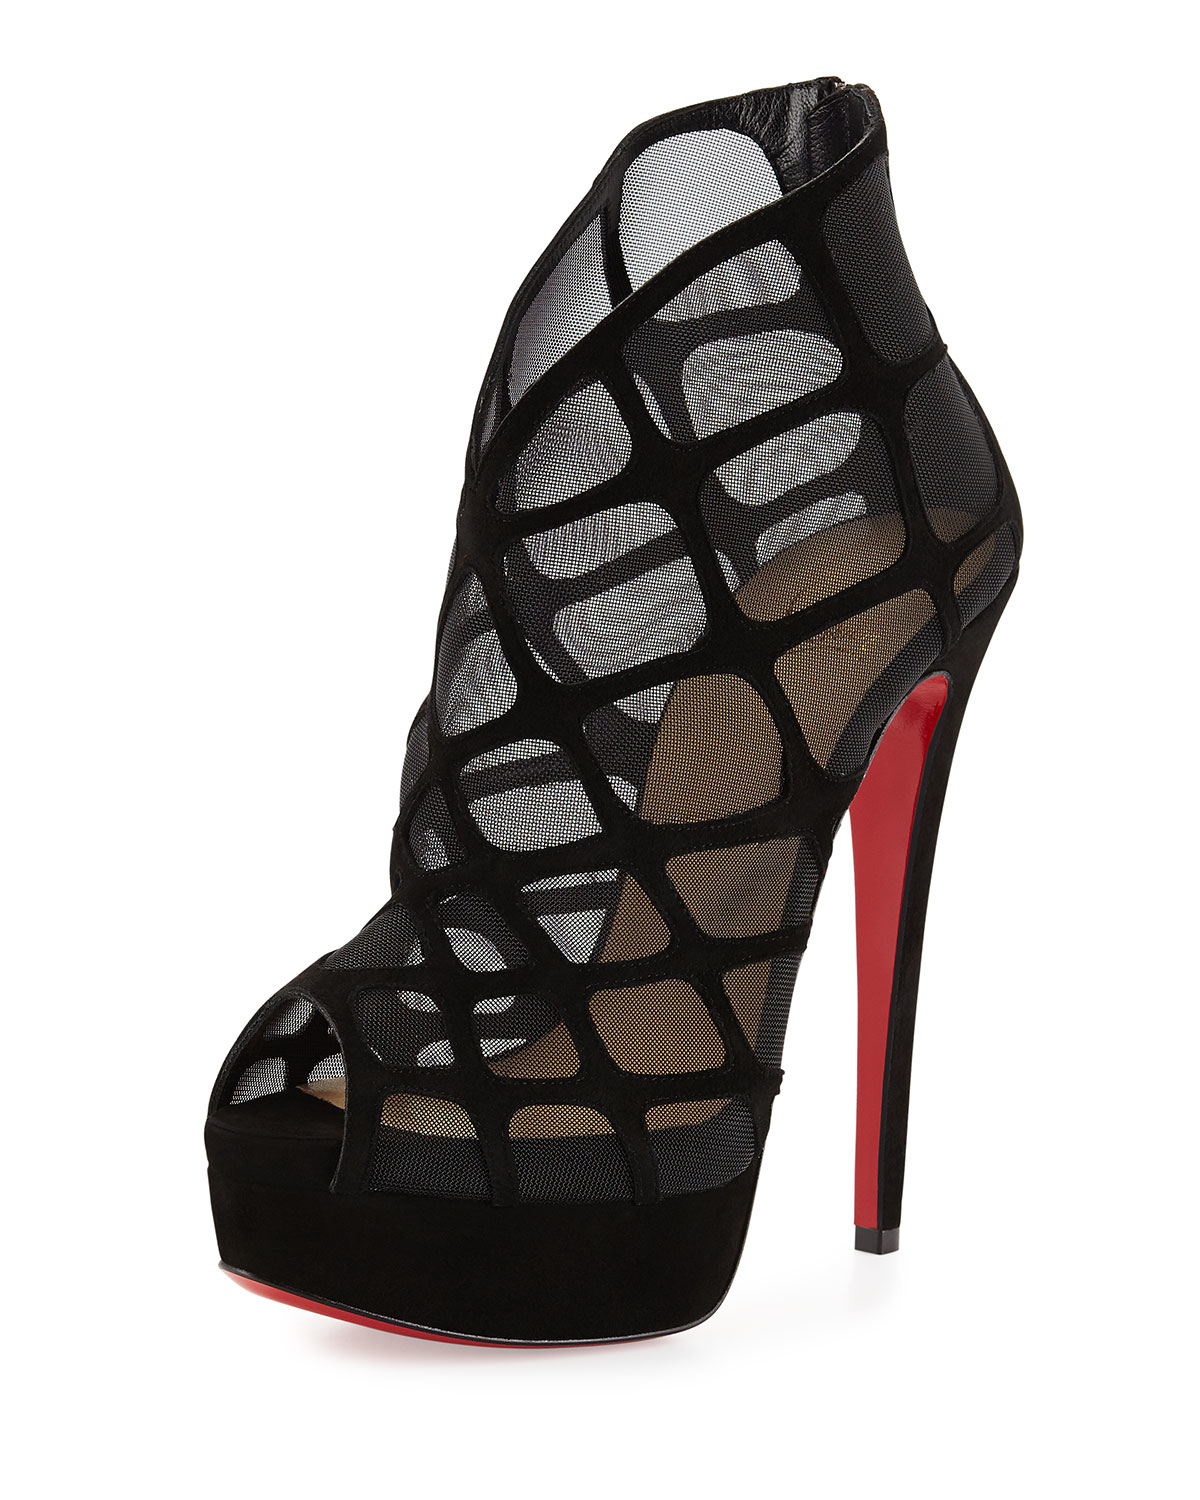 louboutin.com shoes - Christian louboutin Altarakna Mesh-caged Red Sole Bootie in Black ...